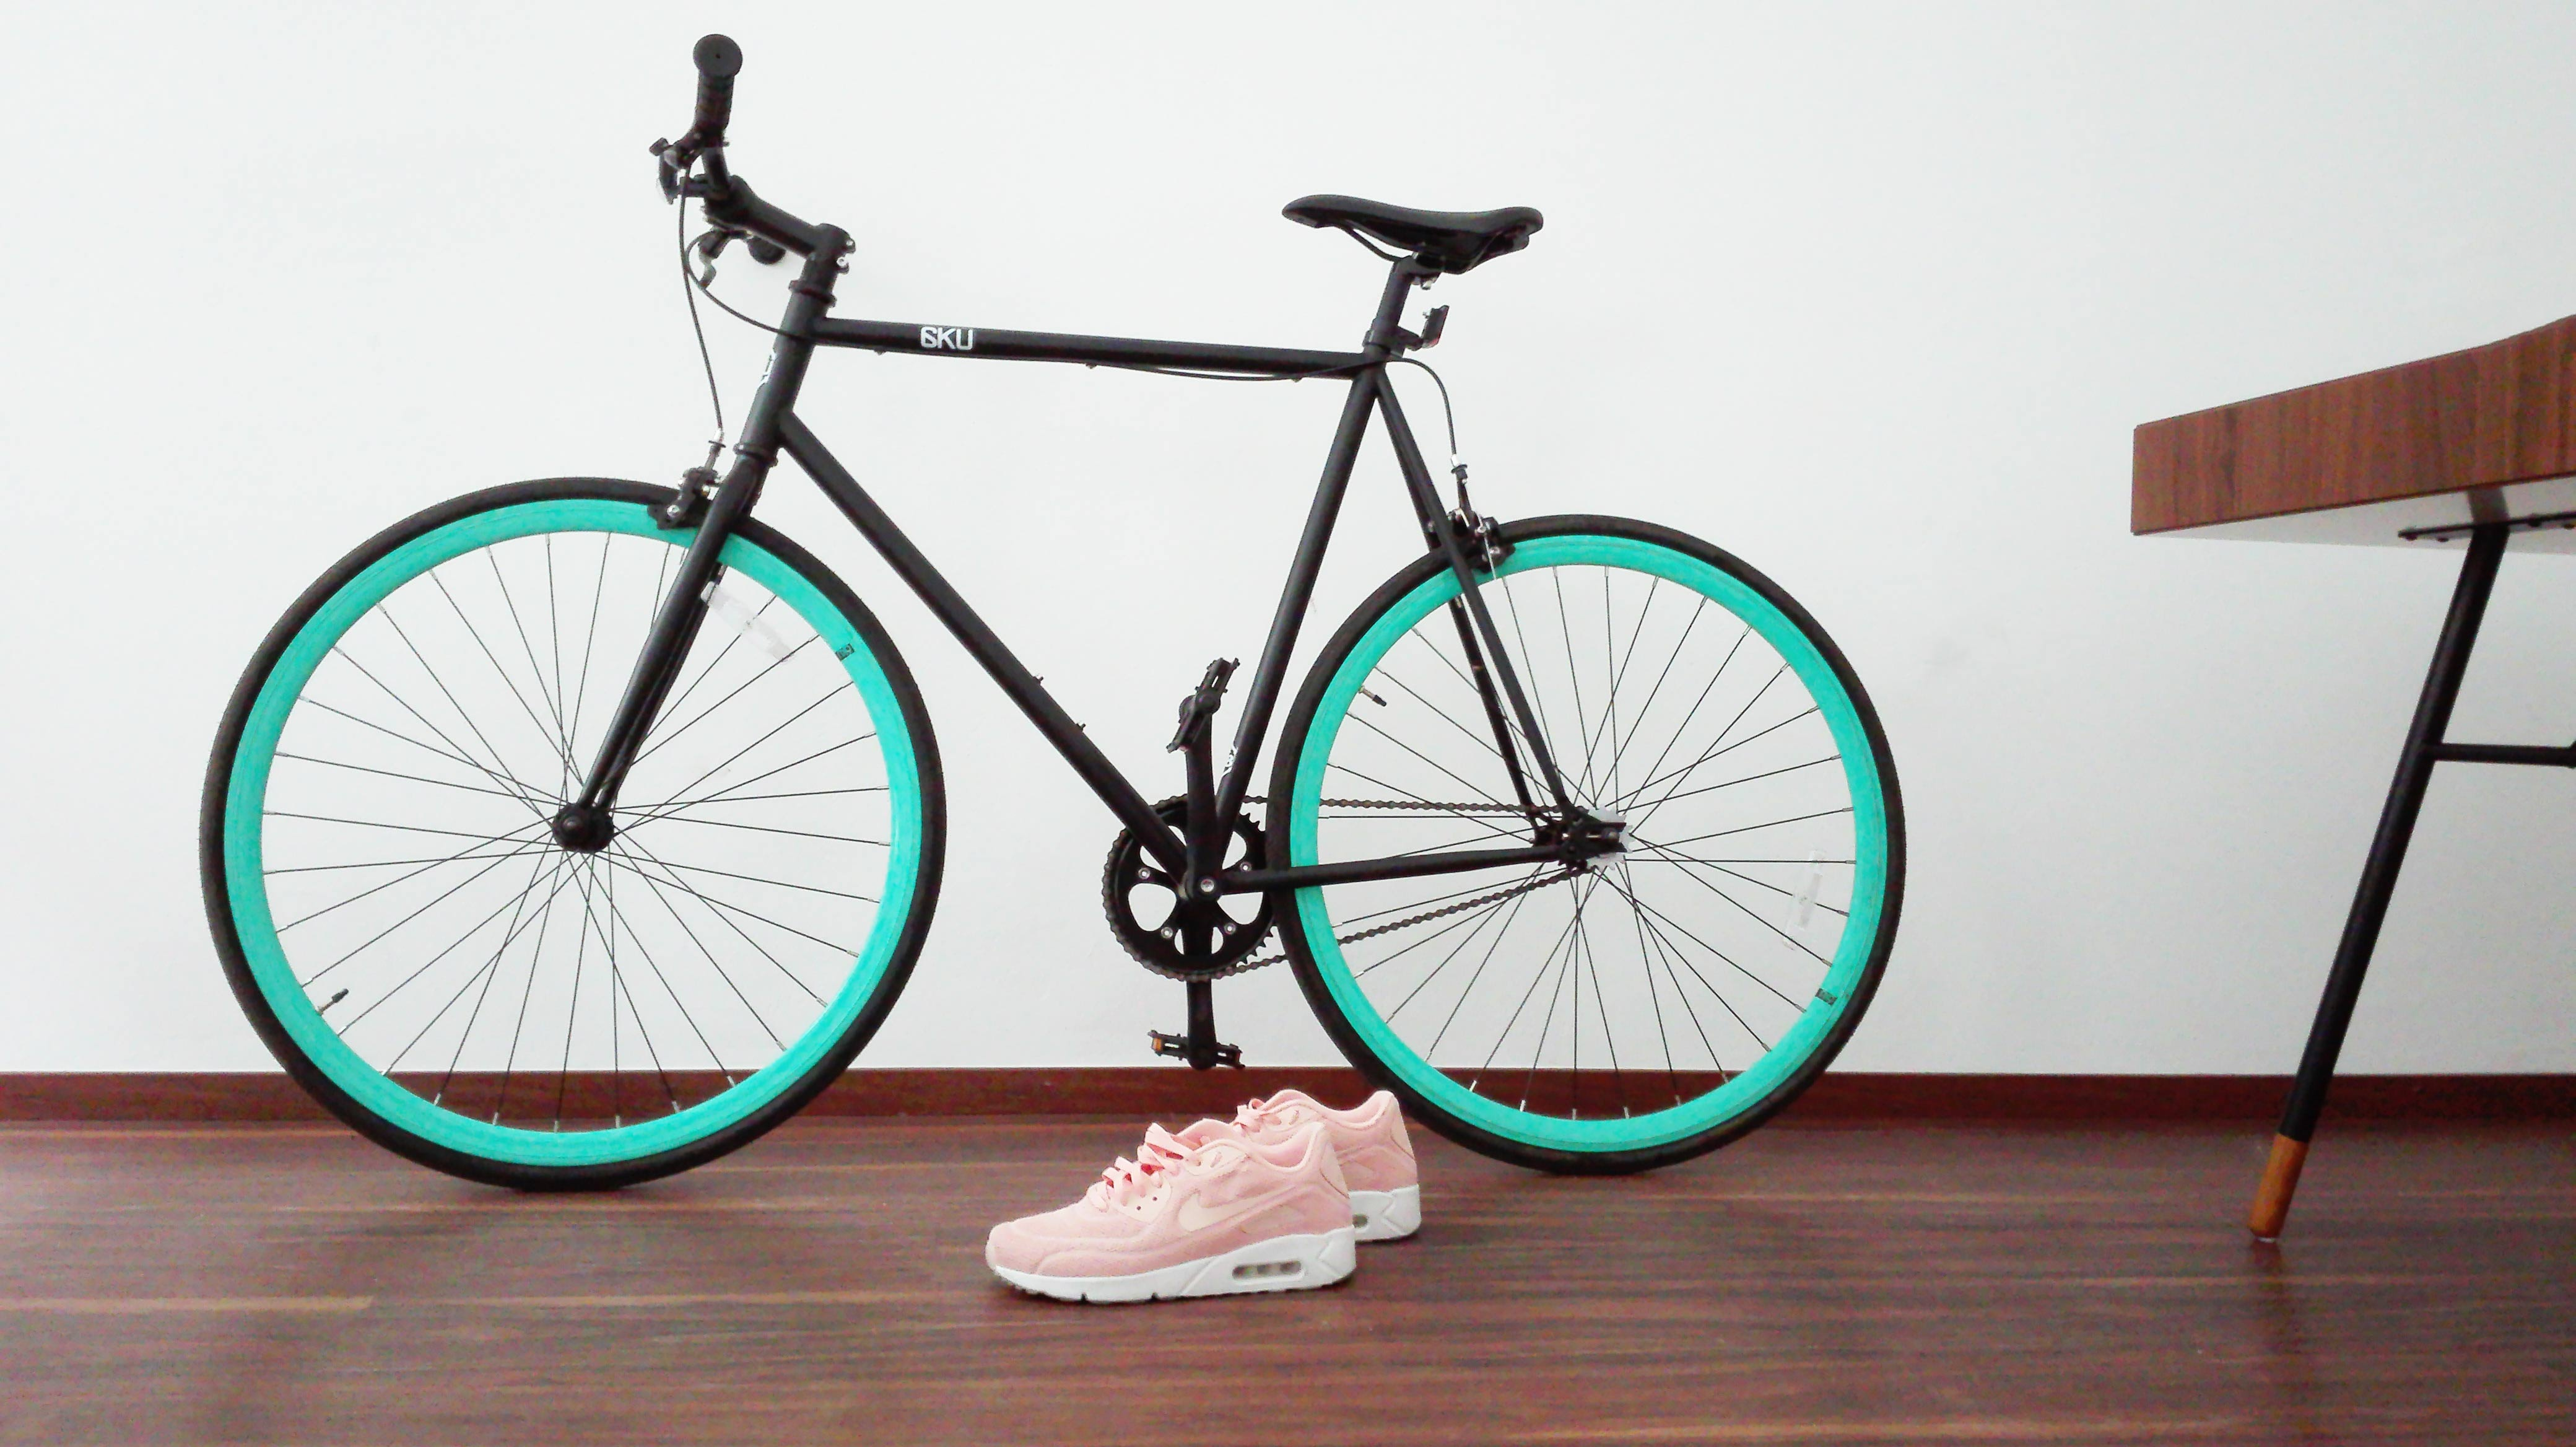 A black road bicycle and a pair of pink sneakers on wooden floor in a room